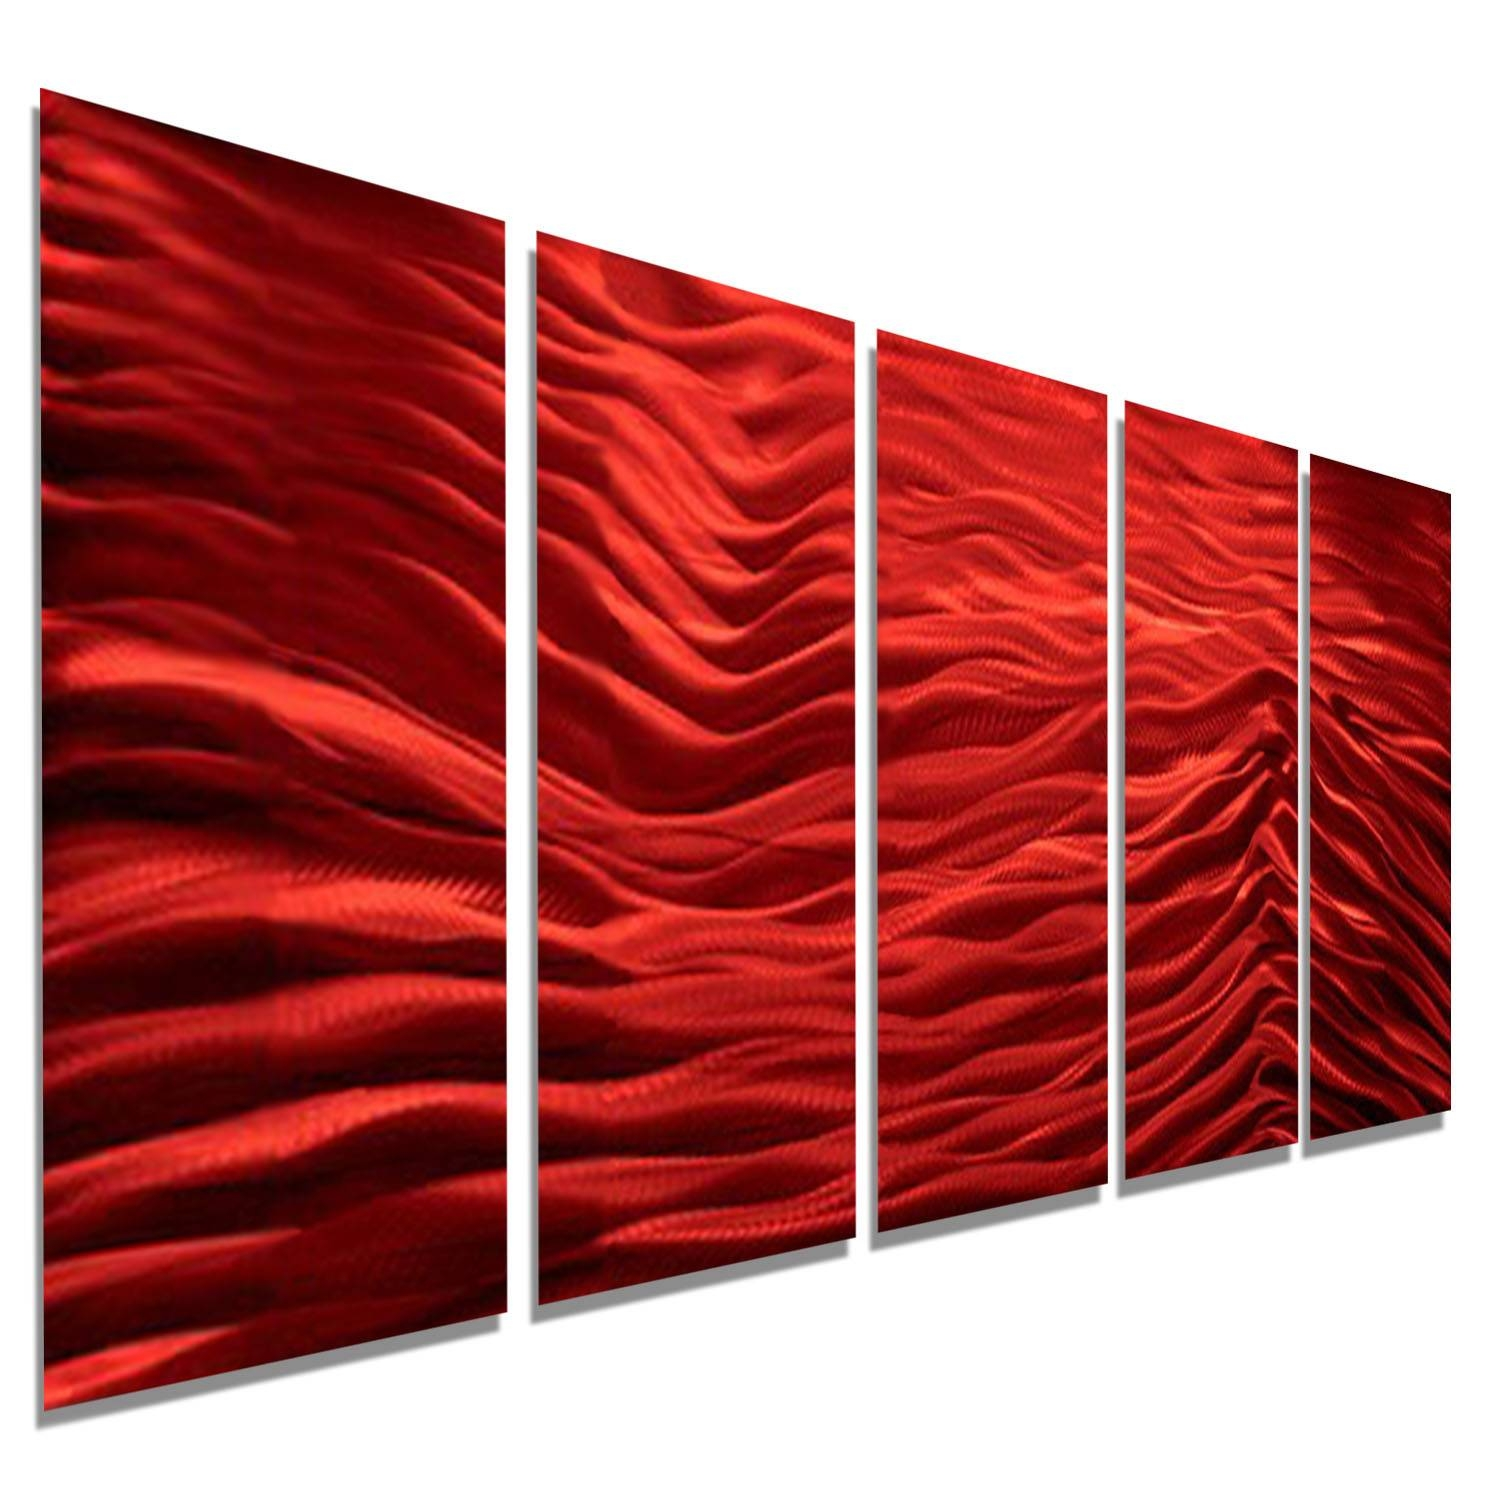 Gorgeous 10+ Red Metal Wall Art Decorating Design Of Red Twist In 2018 Ash Carl Metal Wall Art (View 14 of 30)